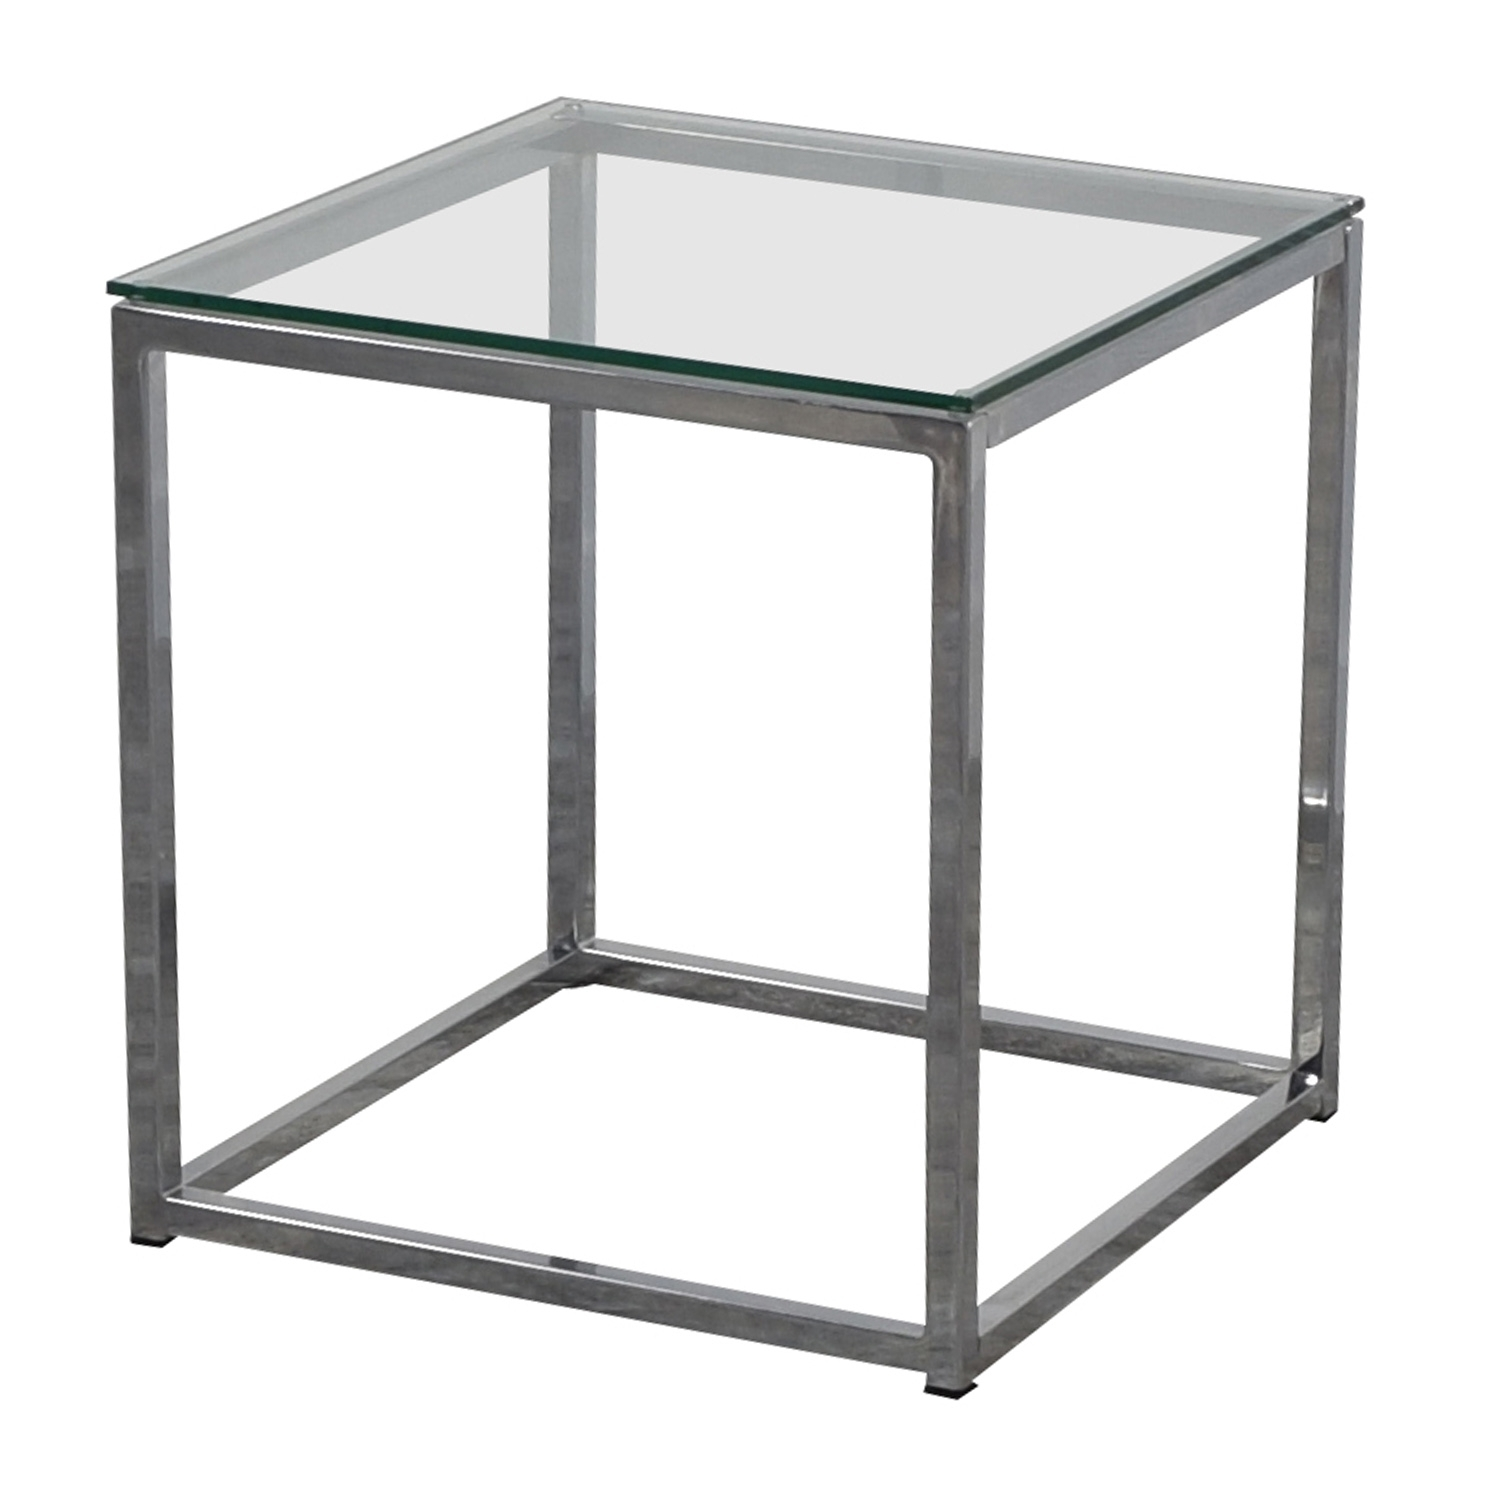 80% Off – Cb2 Cb2 Smart Glass Top Side Table / Tables Throughout Smart Glass Top Coffee Tables (View 1 of 30)